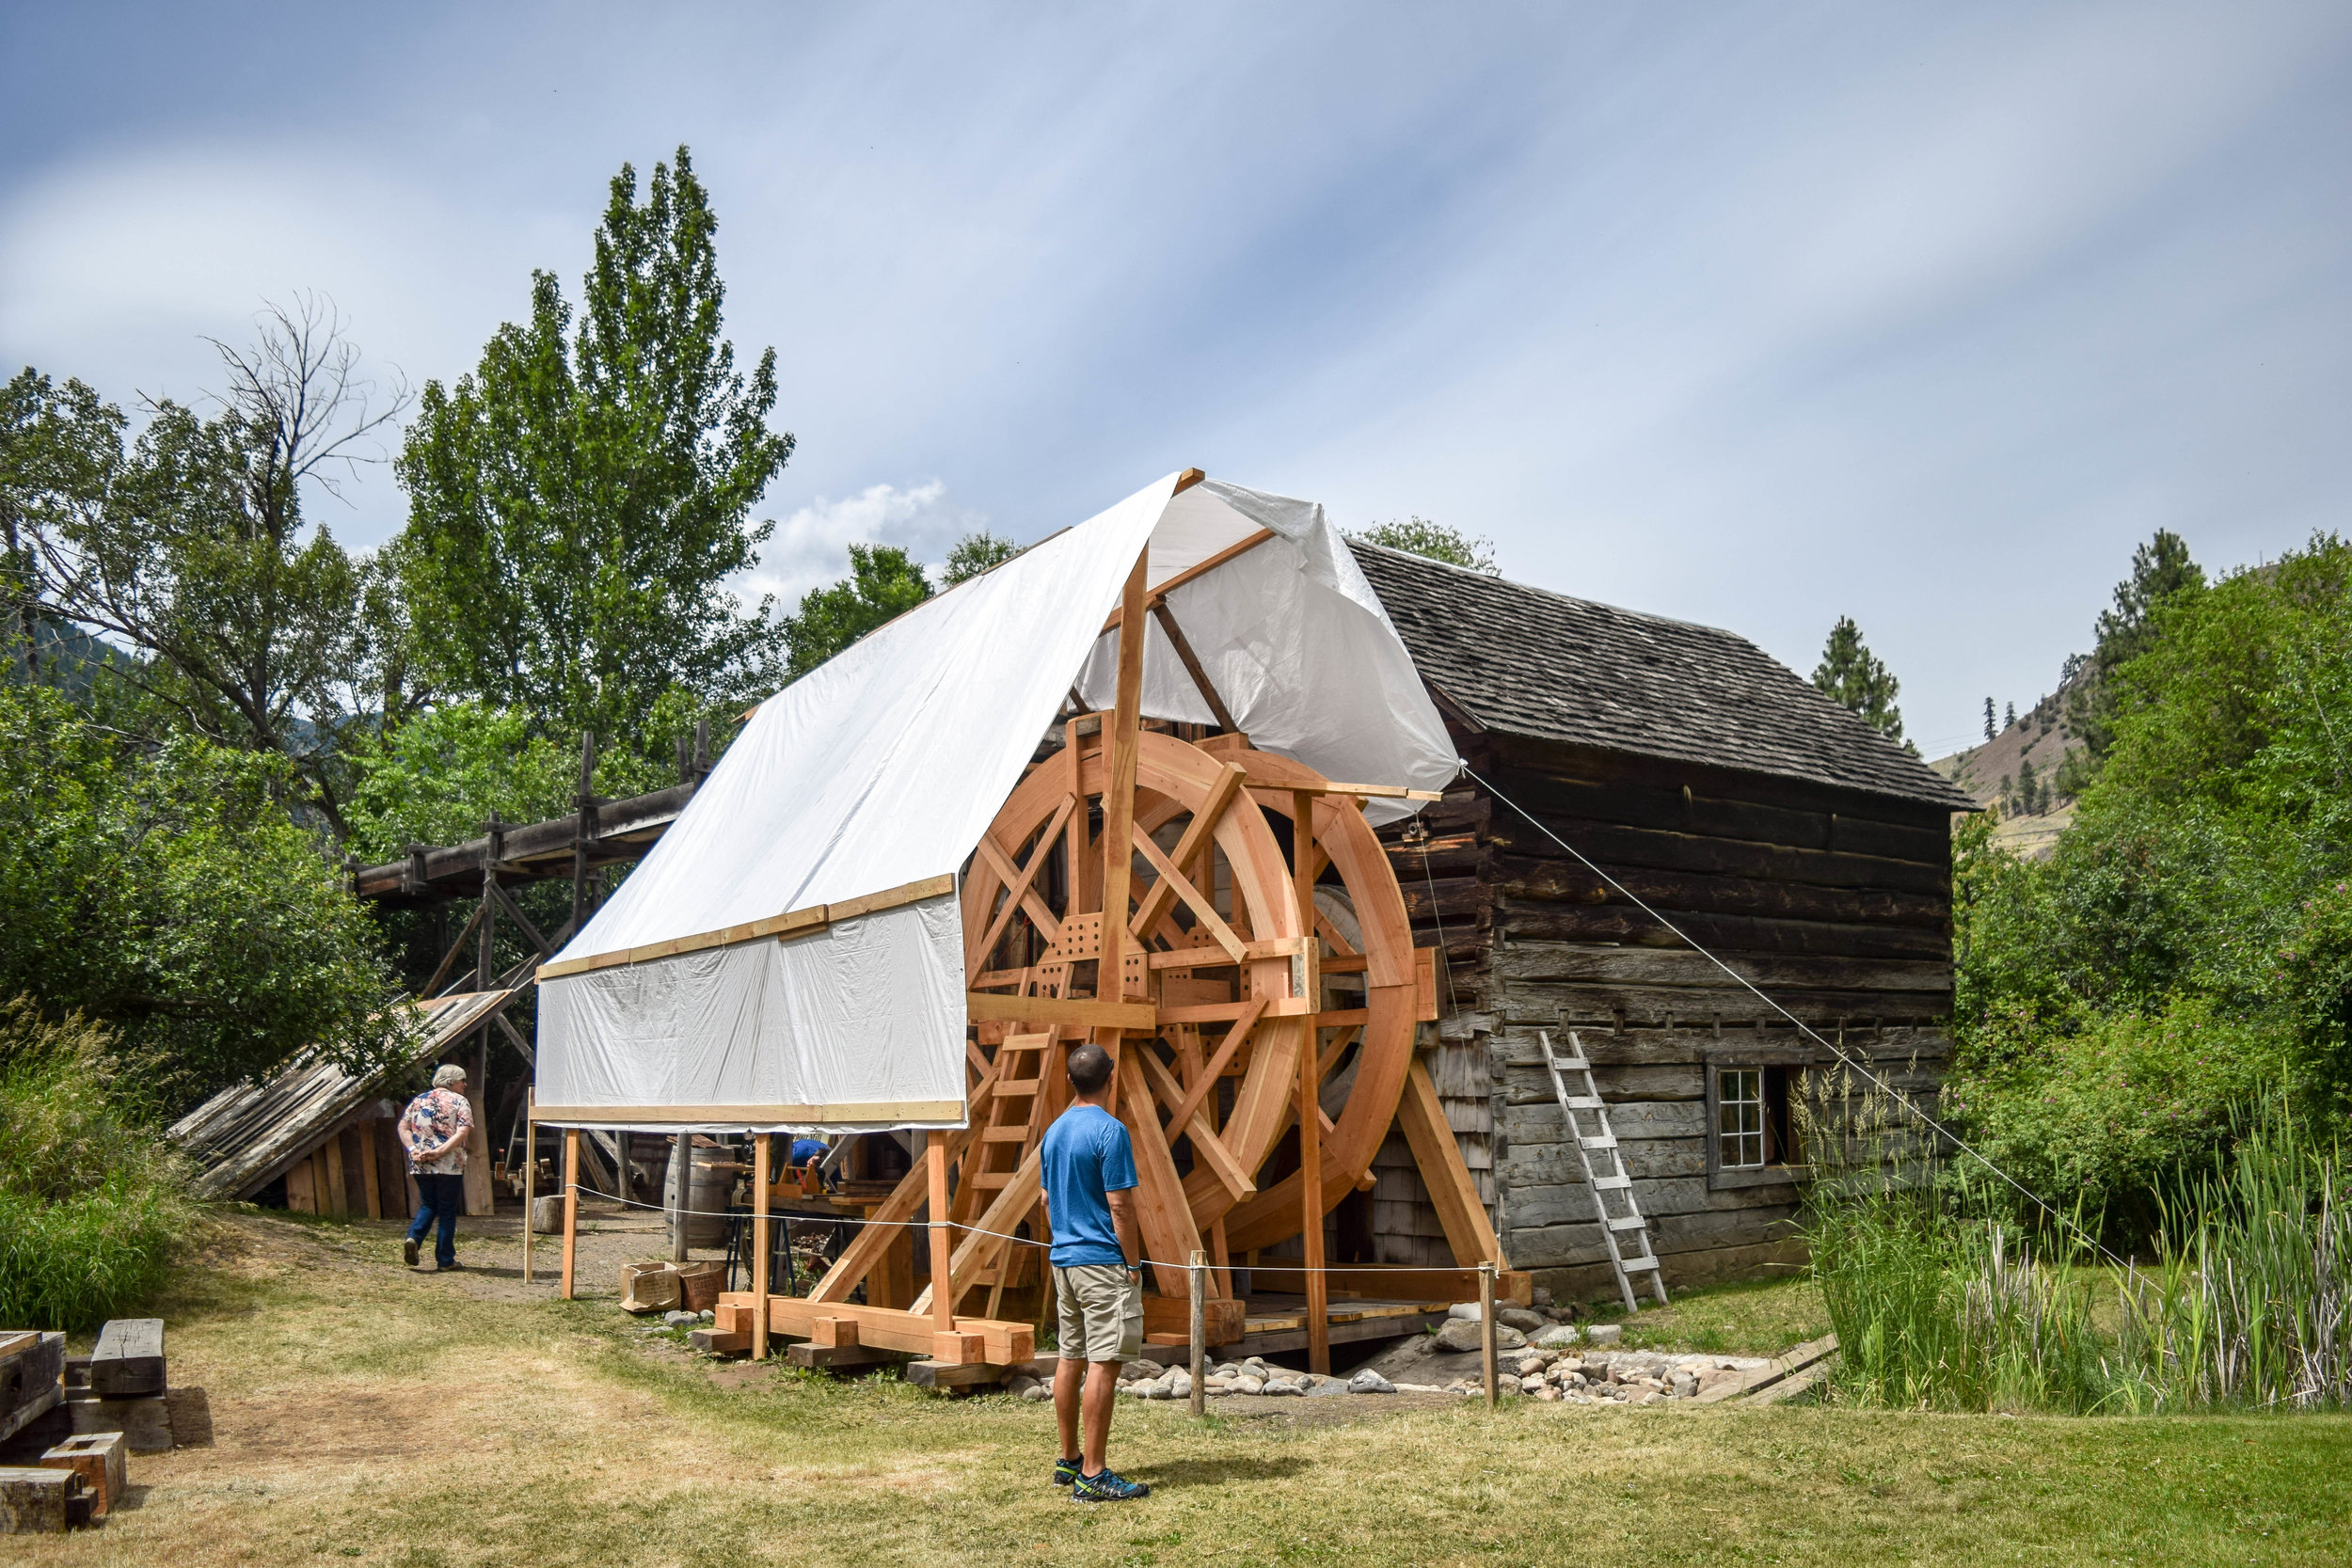 Visiting the Grist Mill: A Piece of British Columbia's Heritage